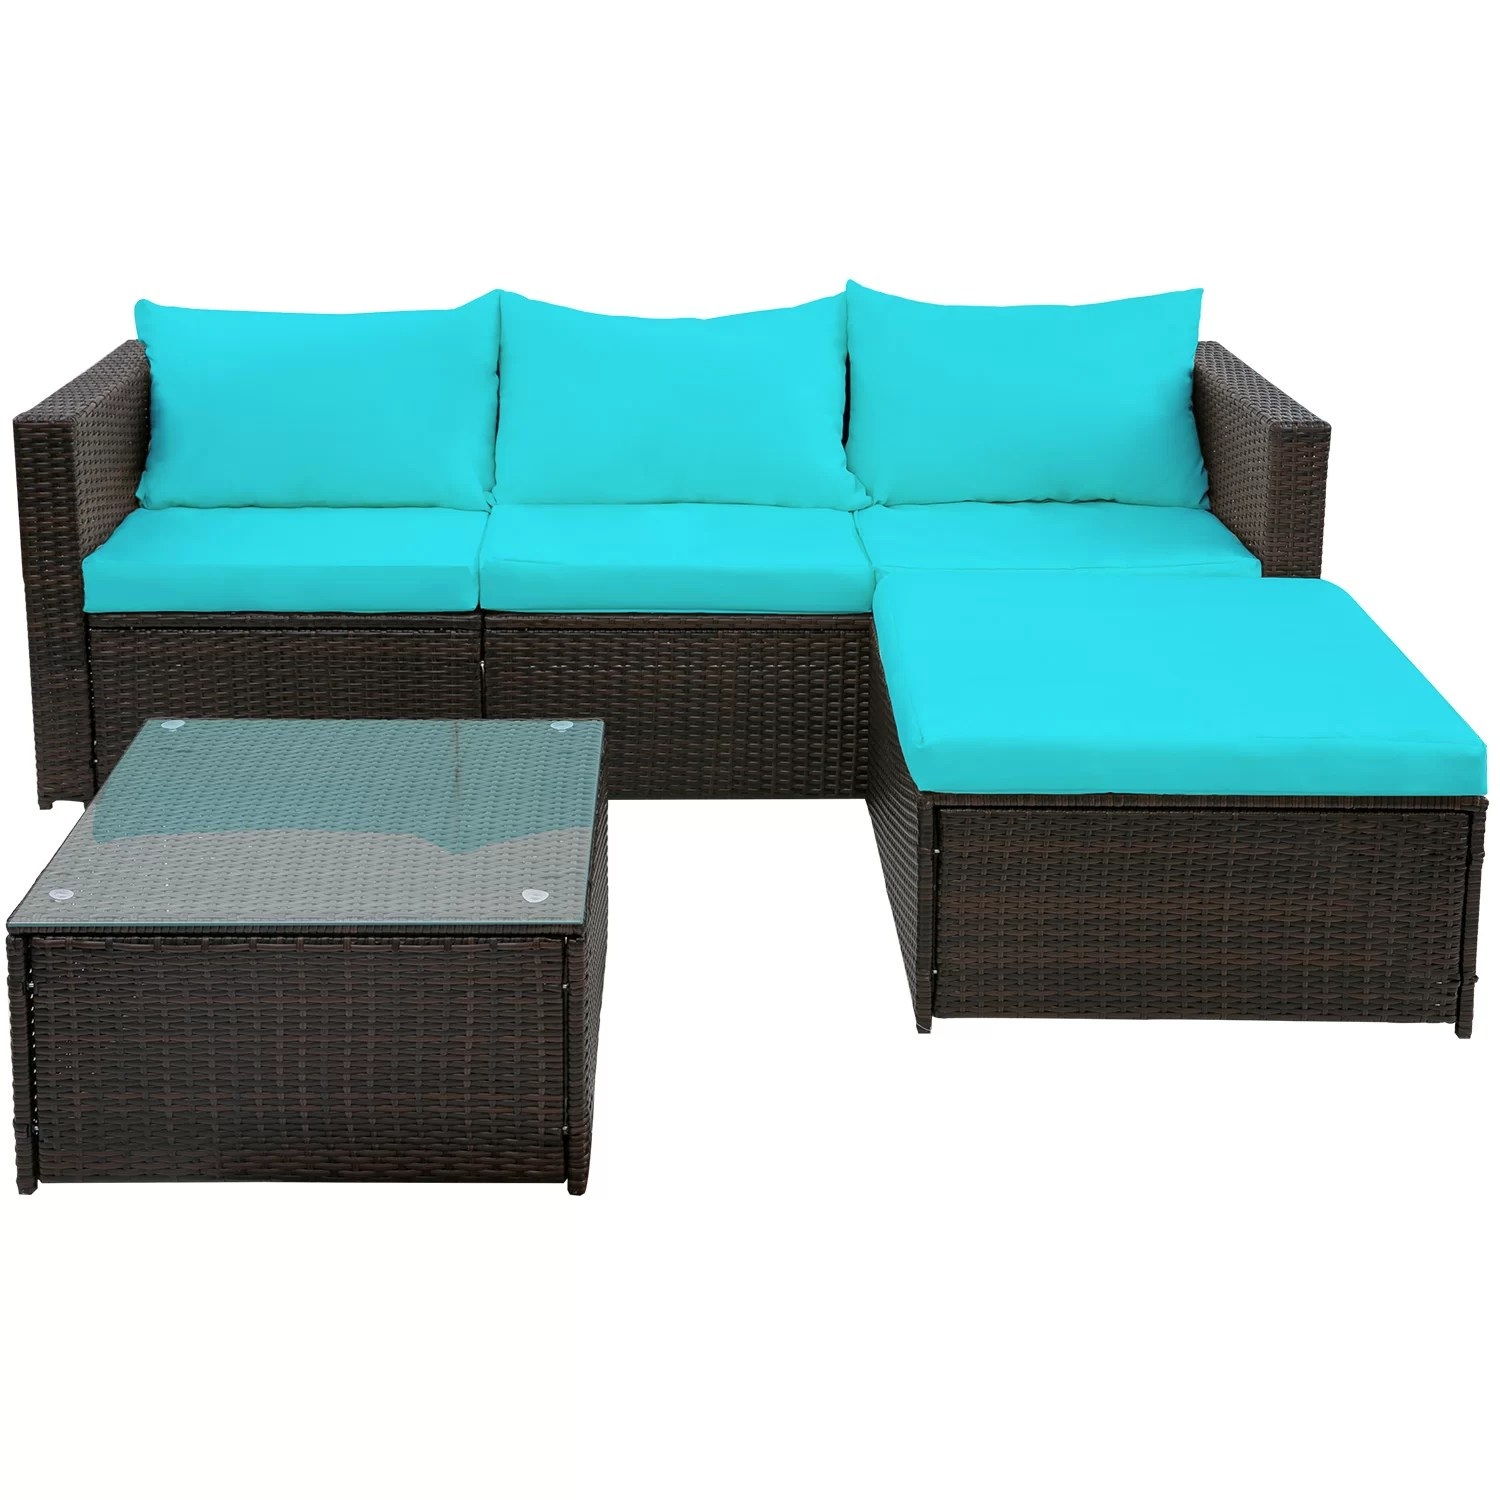 Rattan 3 Piece Sofa Courson 3 Piece Rattan Sofa Seating Group With Cushions